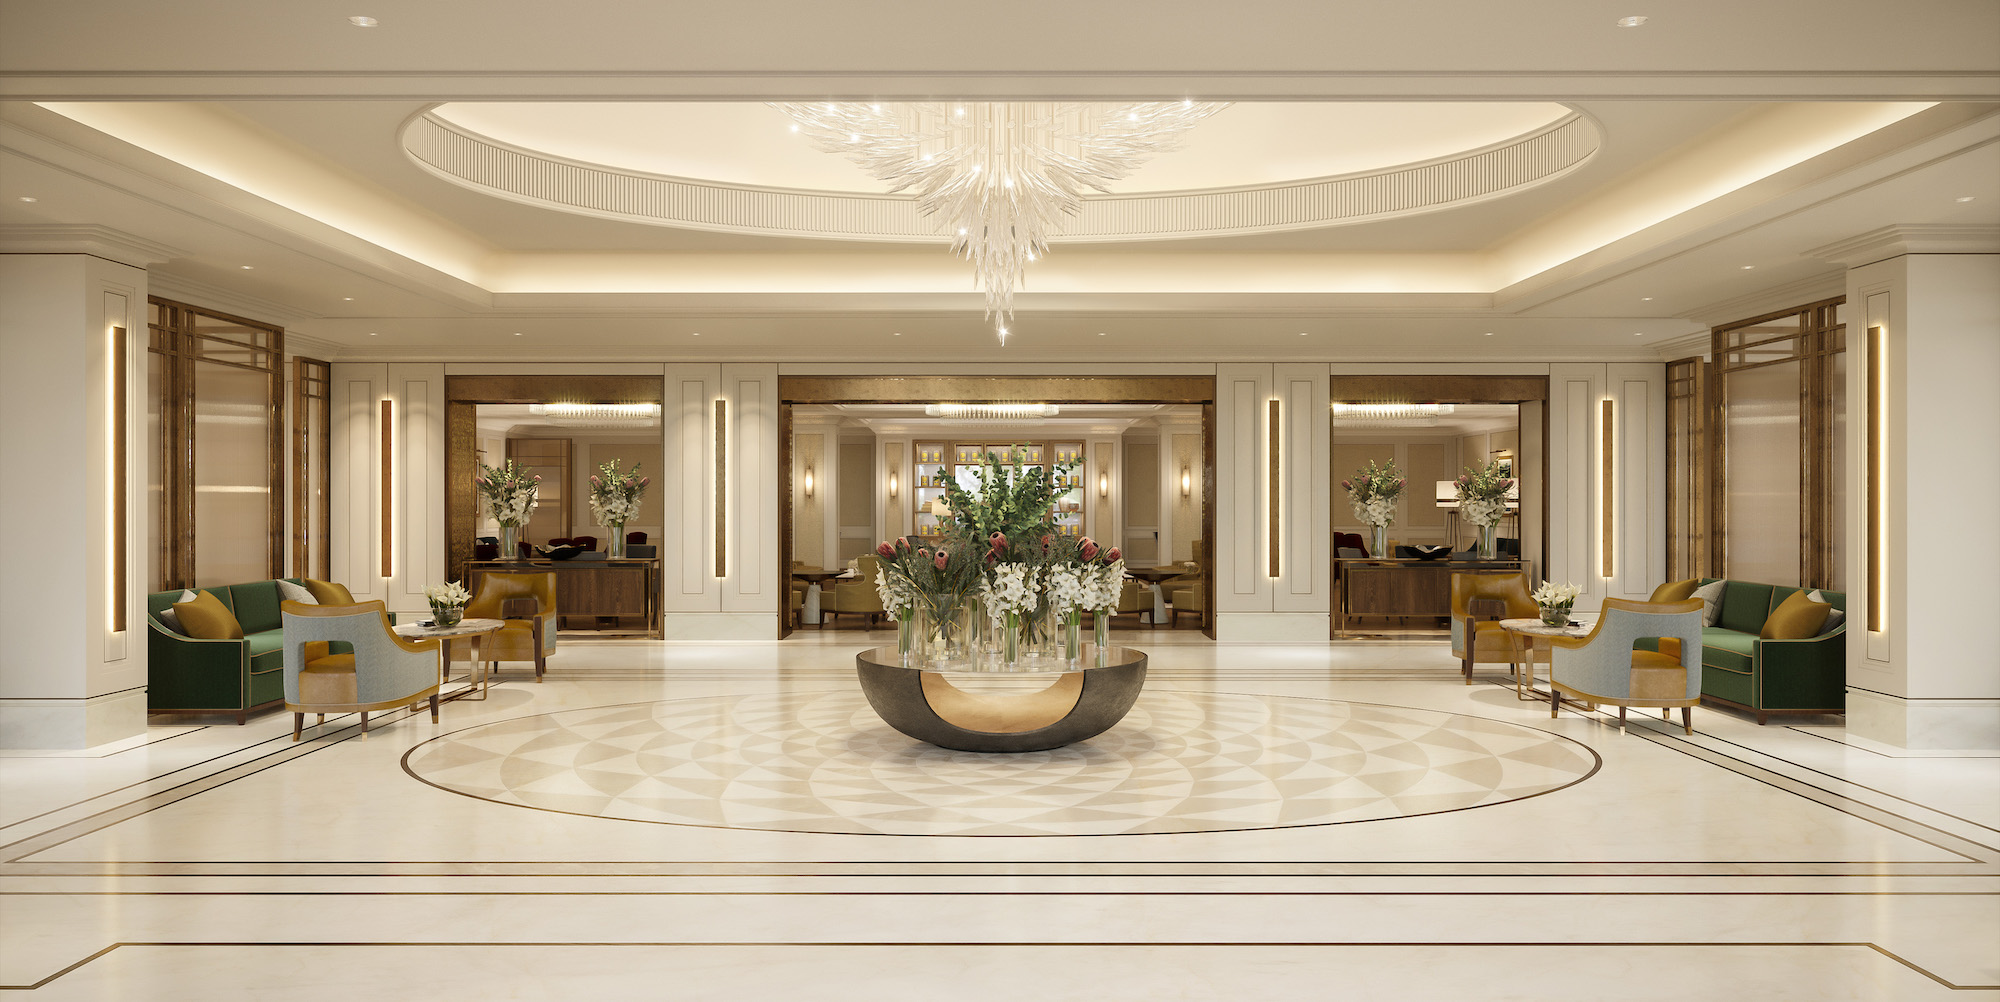 Escape To The Carlton Tower Jumeirah For Some Well-Earned R&R